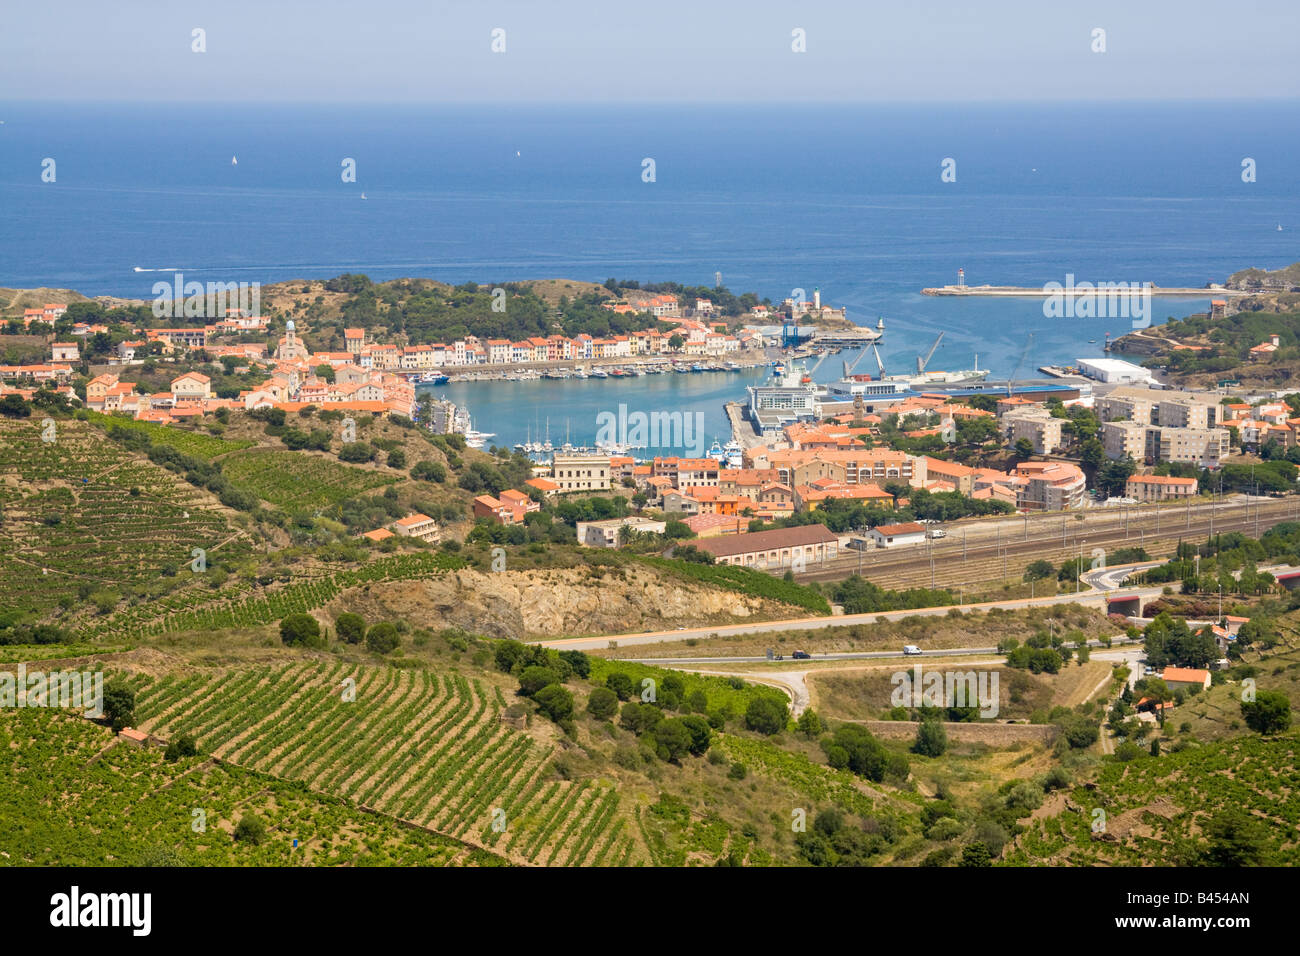 Port Vendres and its vineyards in the back country of the mediterranean Cote Vermeille, origin of the renowned wines - Stock Image